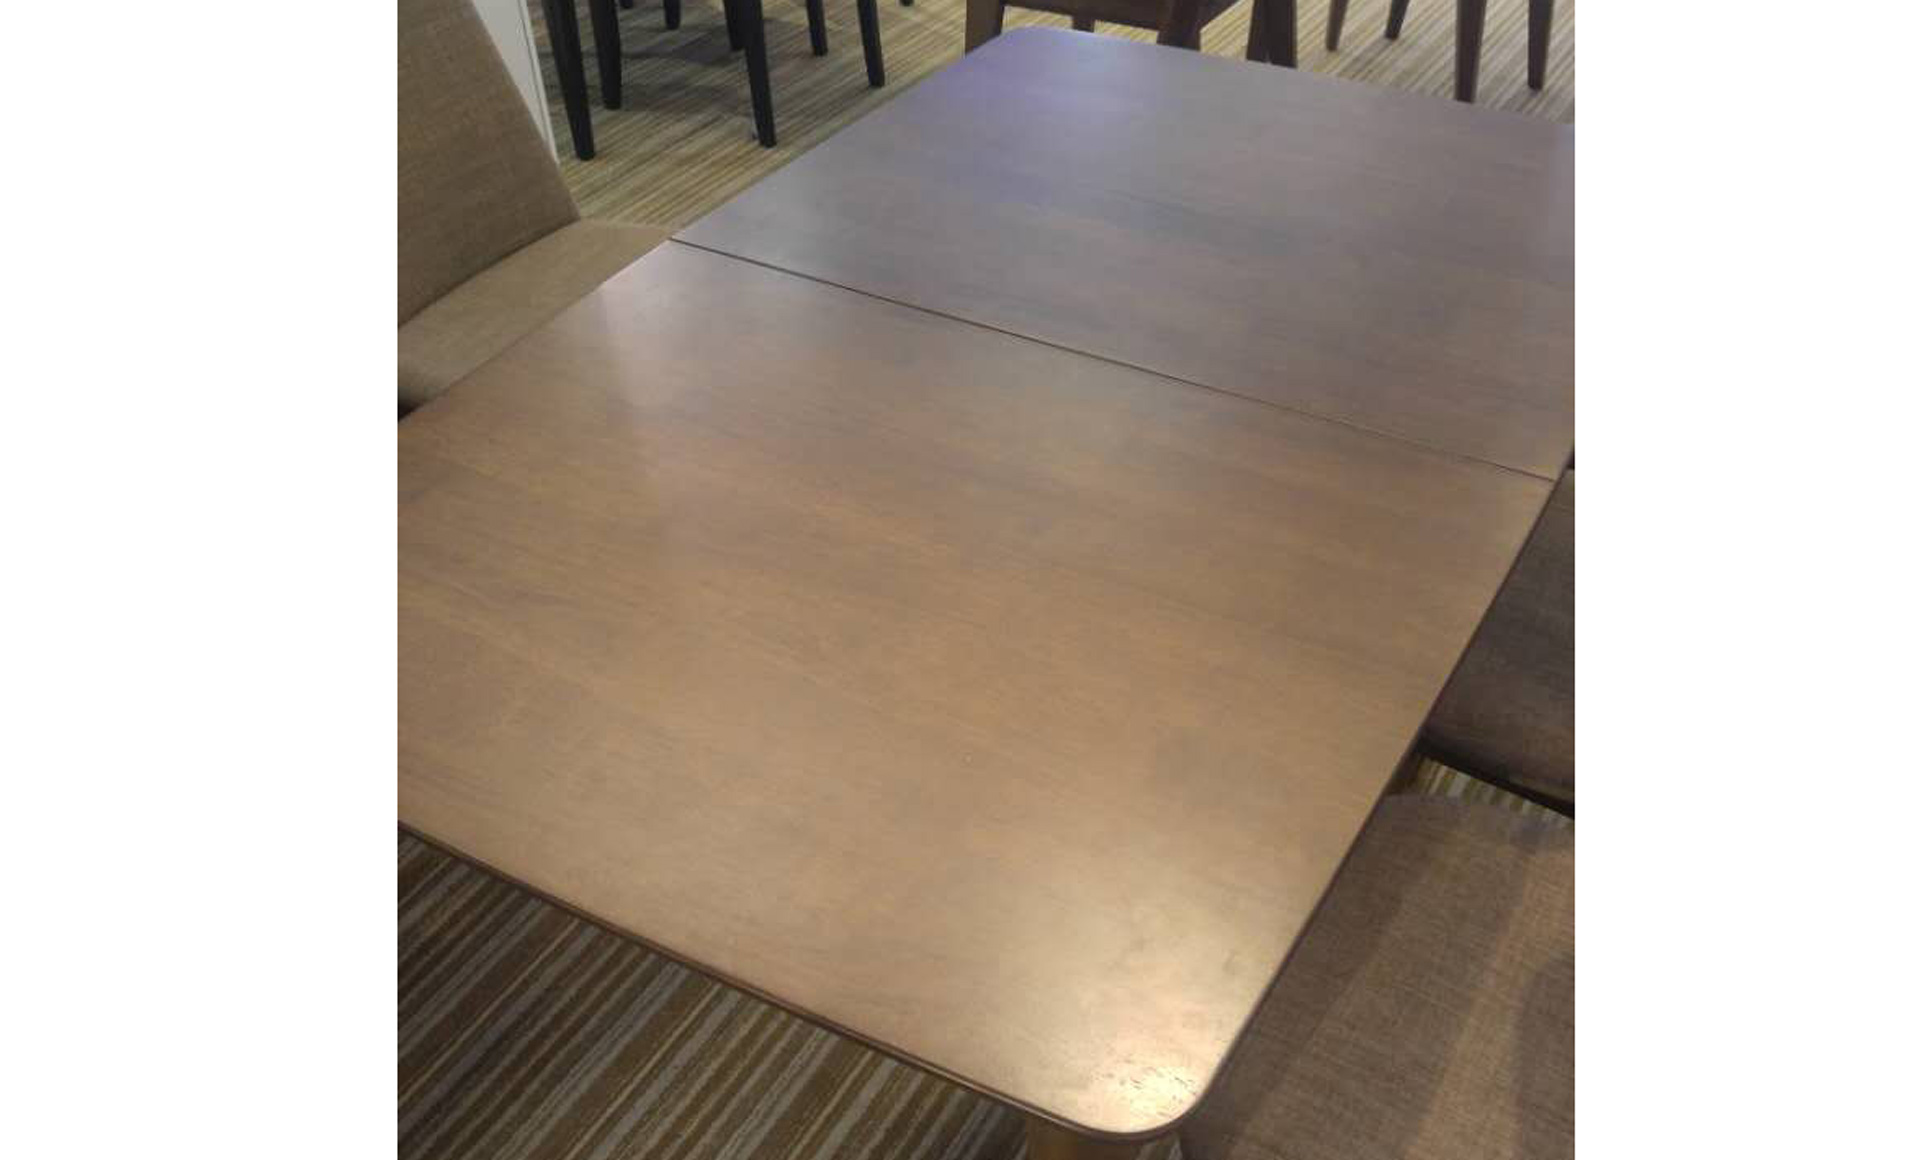 Upscale An Over Foot Our Story What Is Rubberwood Mdf What Is Rubberwood Cutting Board Claiming That An Item Is Made From Teak When It Was Obviously Note That This Lie Came From A Store houzz 01 What Is Rubberwood